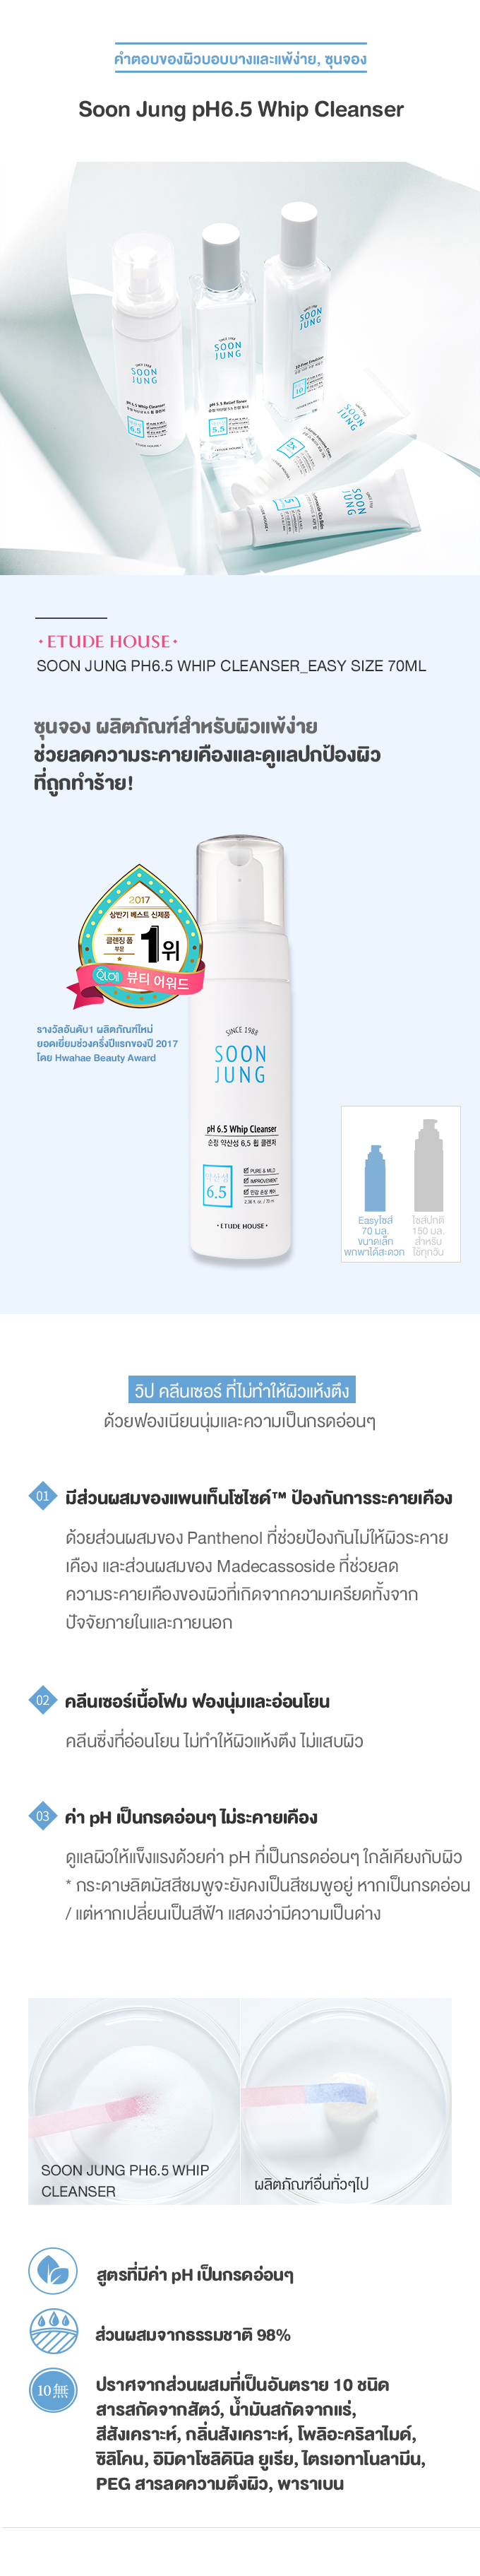 Soon Jung pH6.5 Whip Cleanser 70ml_01